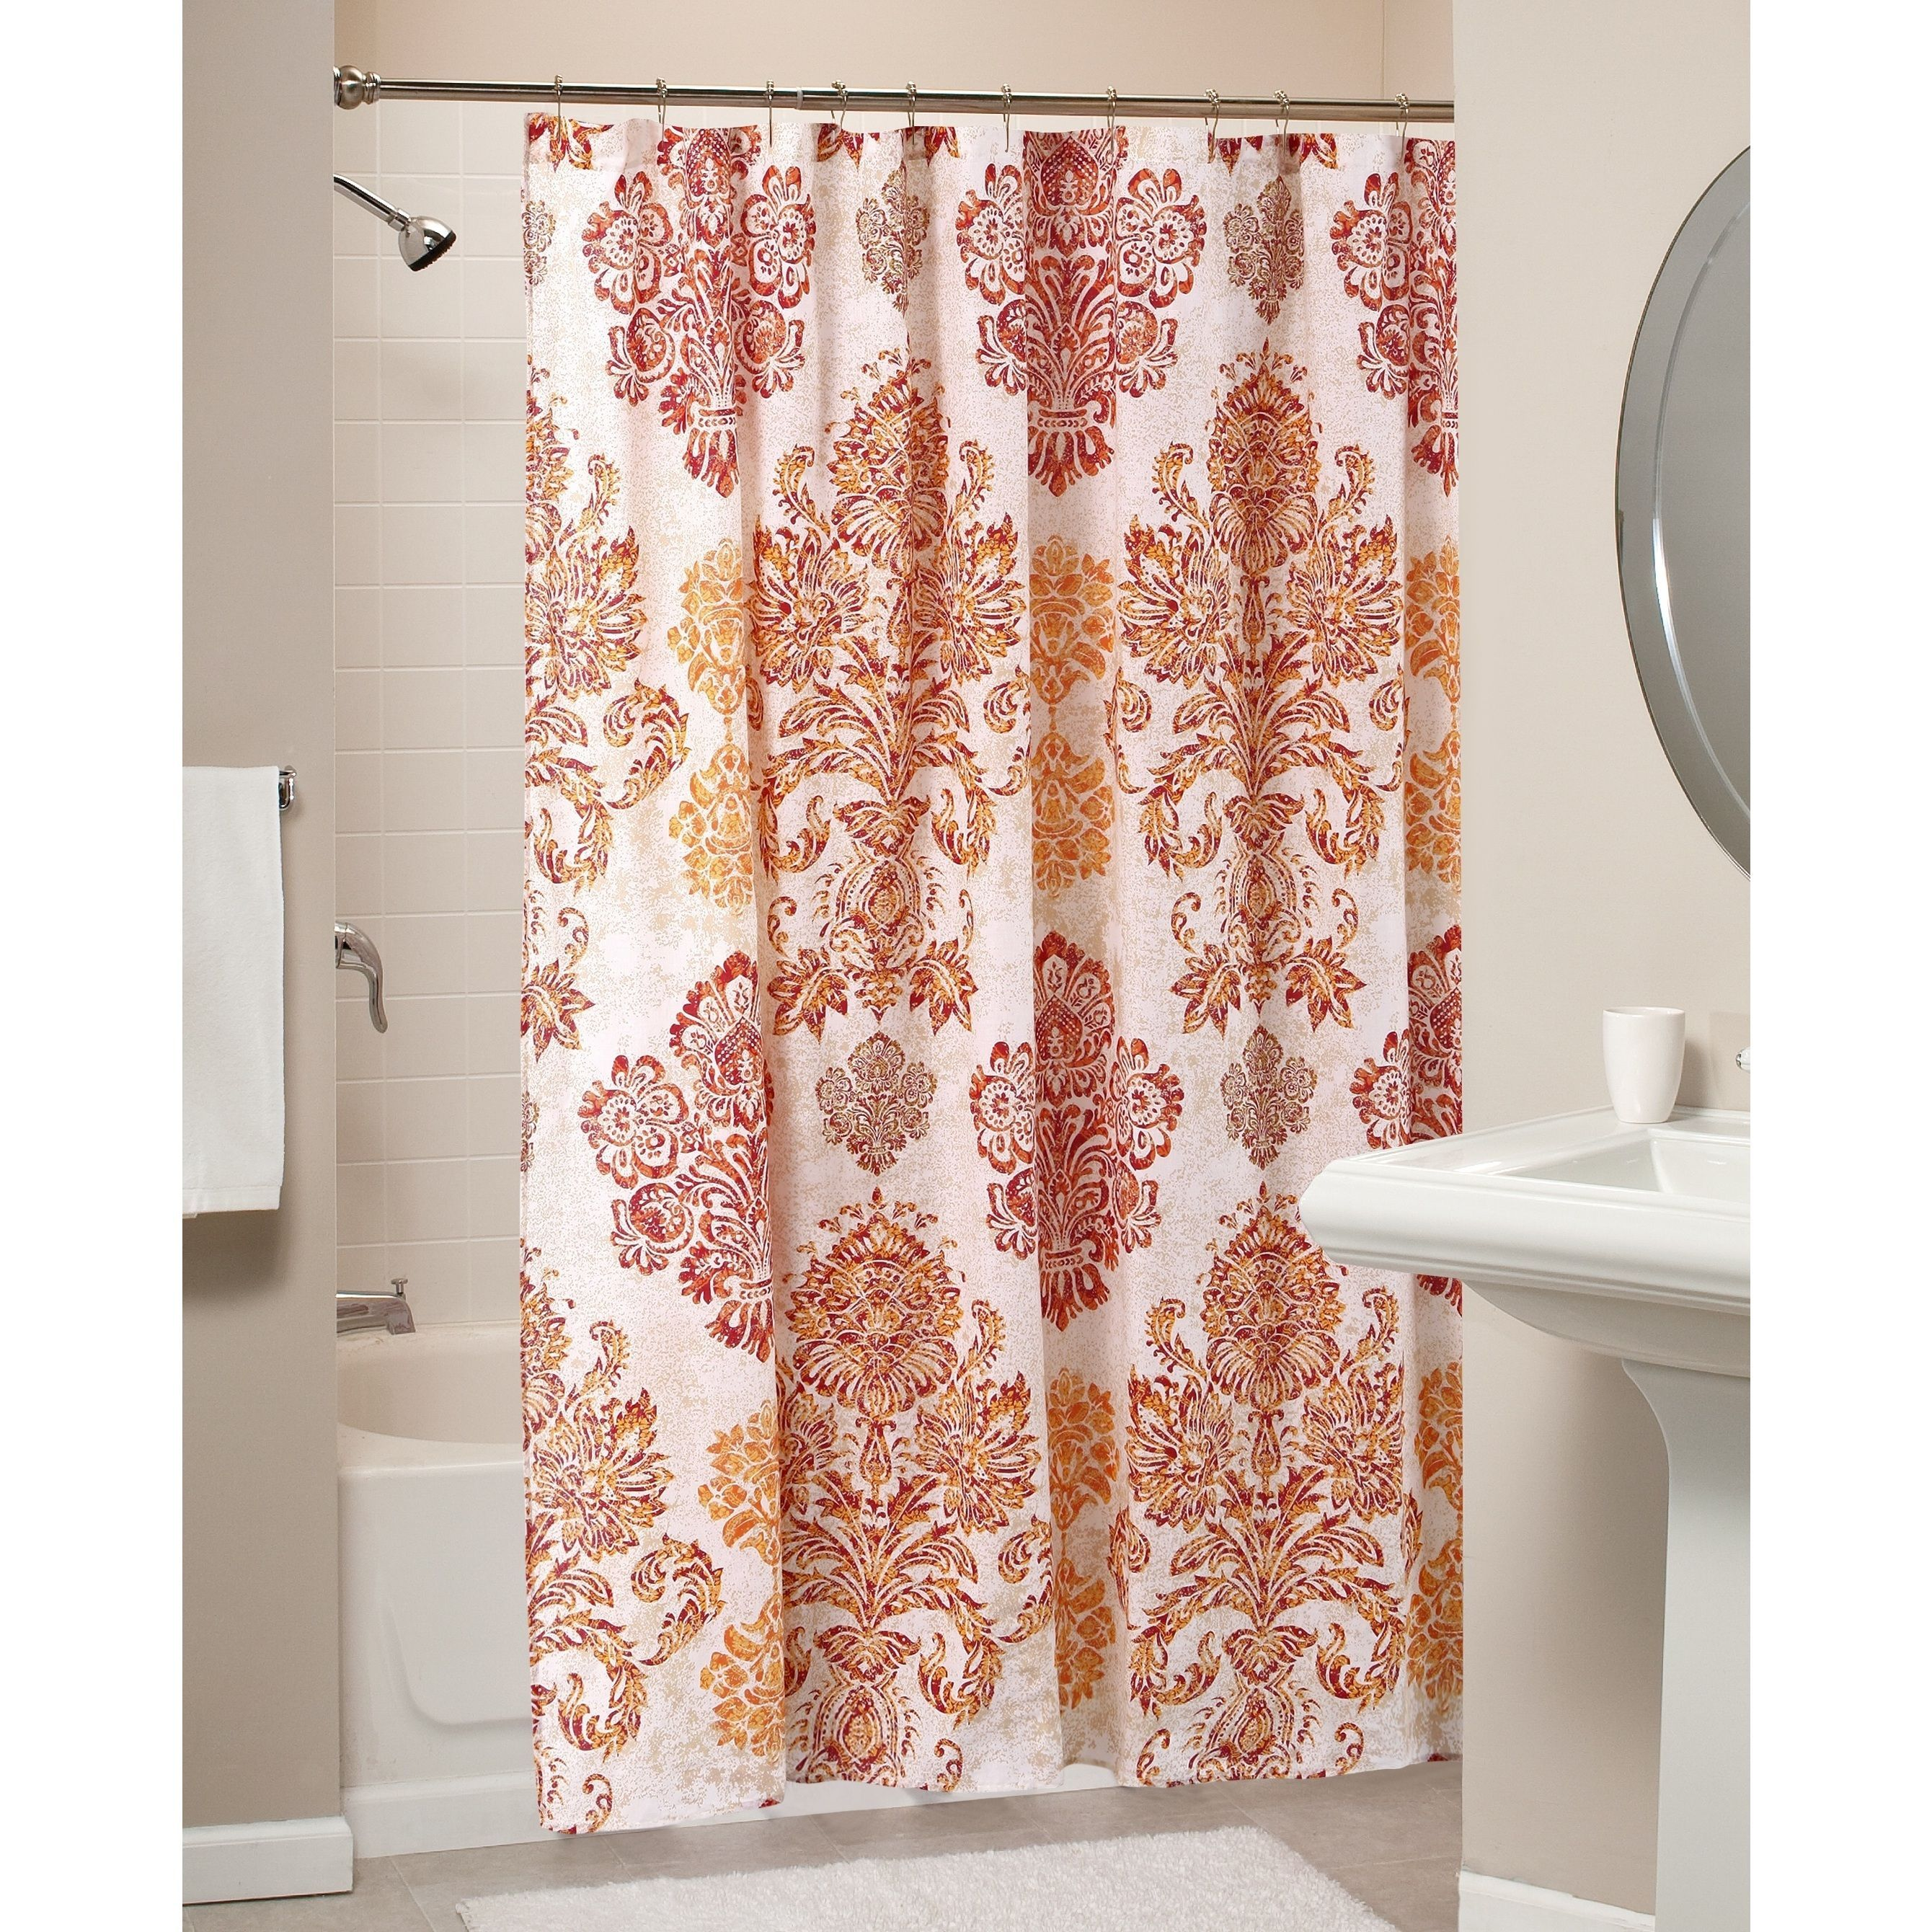 Styled To Evoke The Glory Of Ancient Empires, The Tuscany Shower Curtain  Features Ornamental Damasks